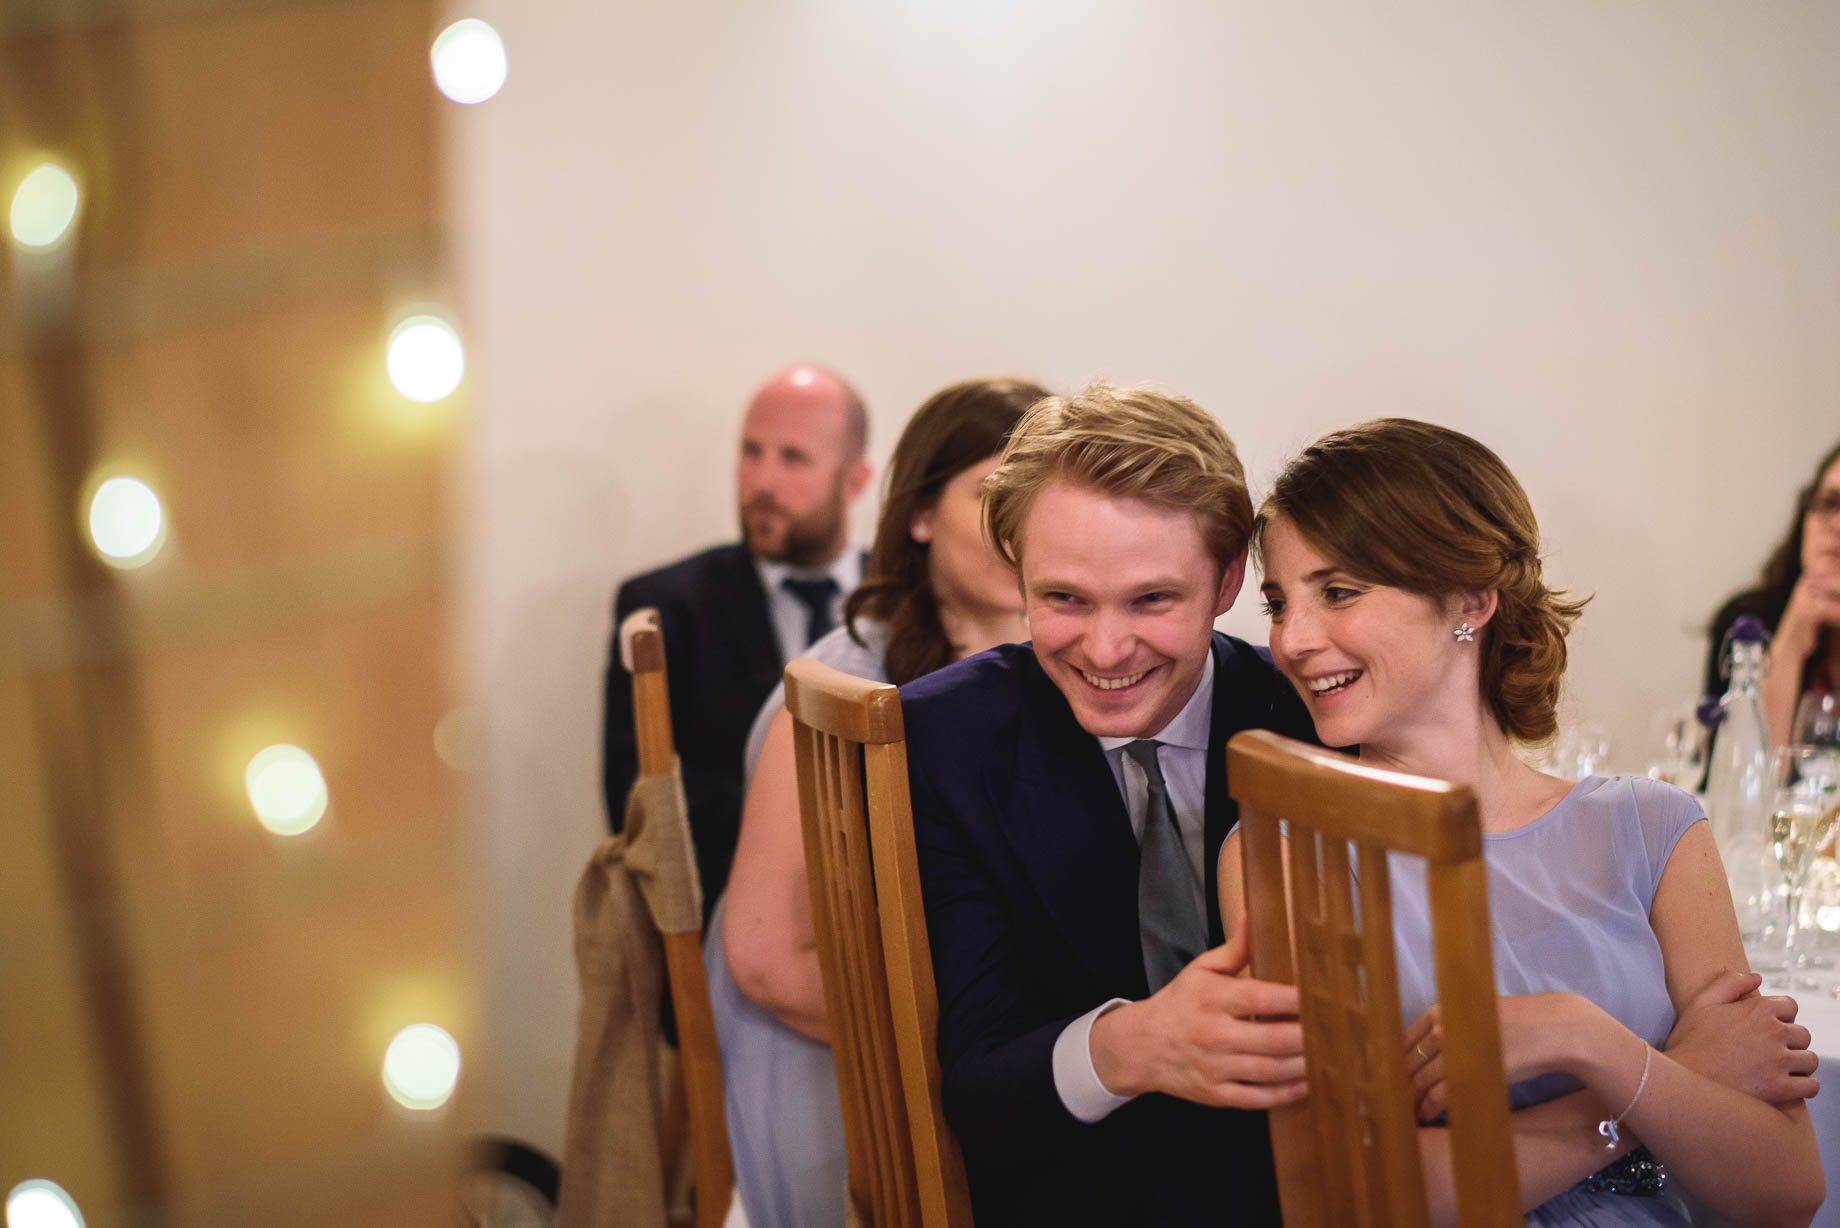 Rivervale Barn wedding photography by Guy Collier - Claire and Simon (115 of 133)